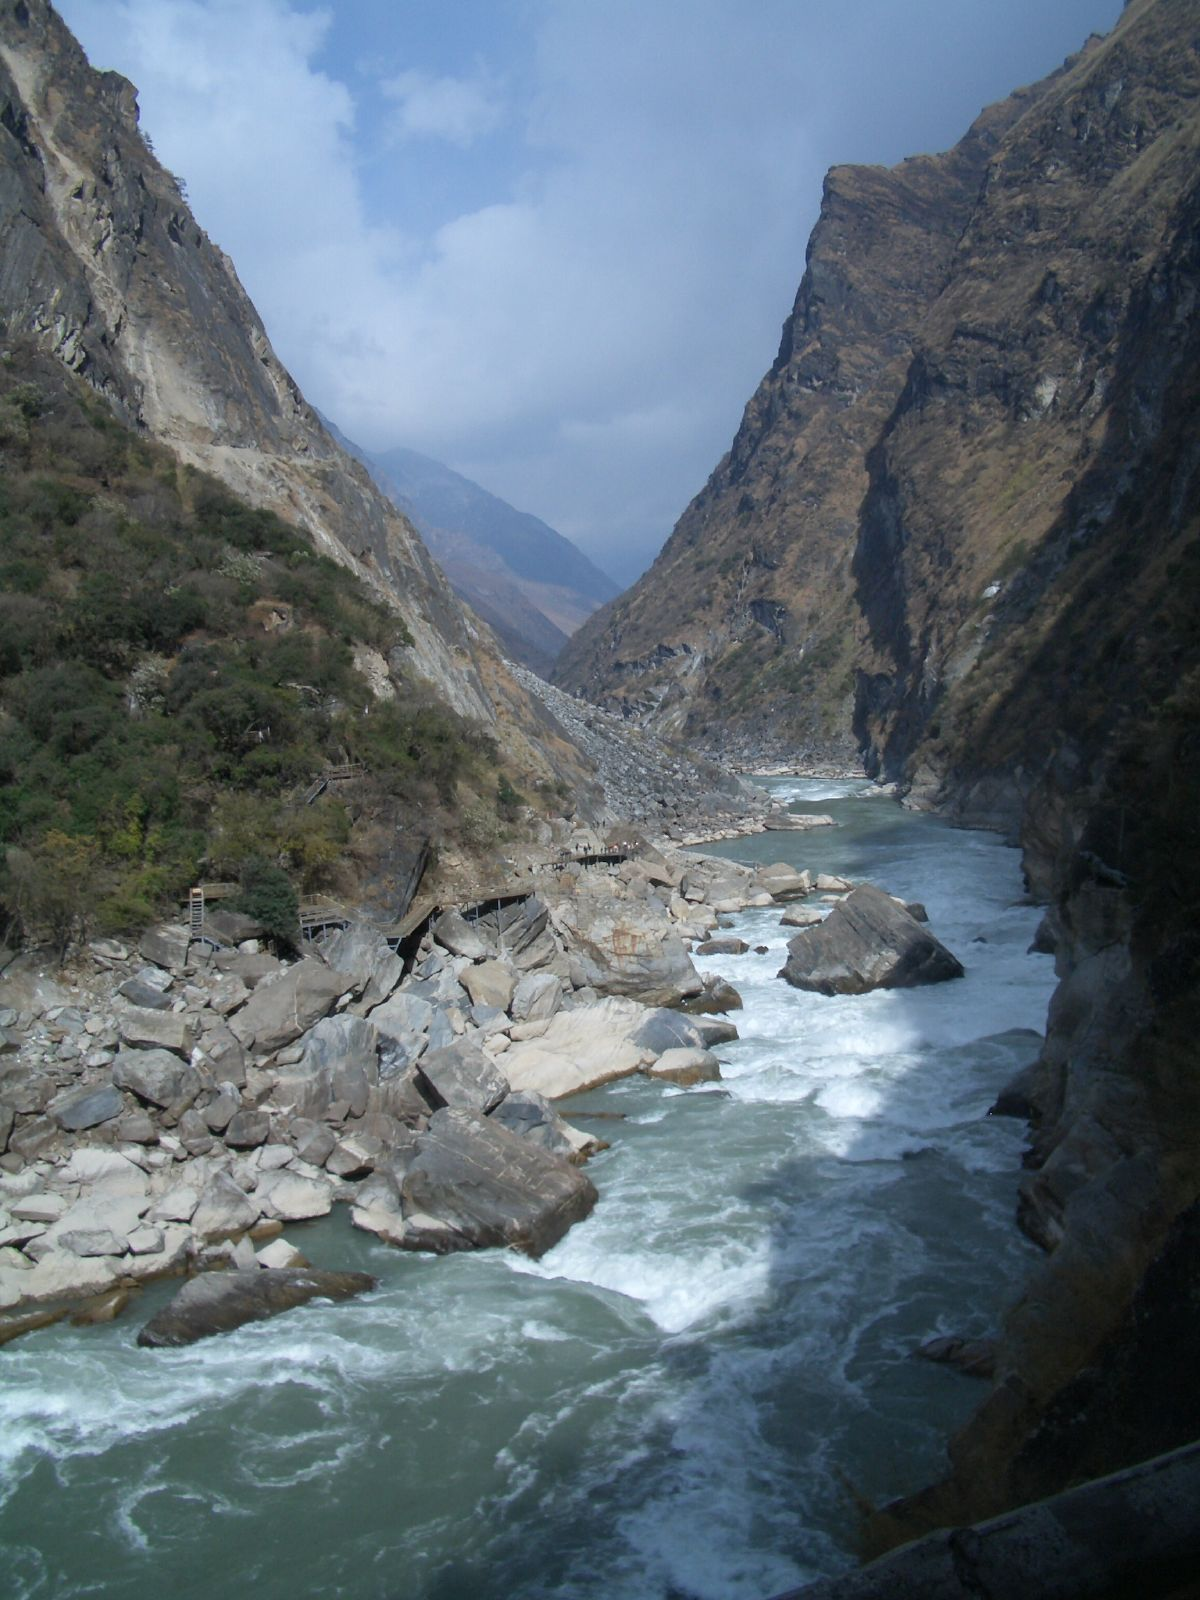 Tiger Leaping Gorge on Yangtze River